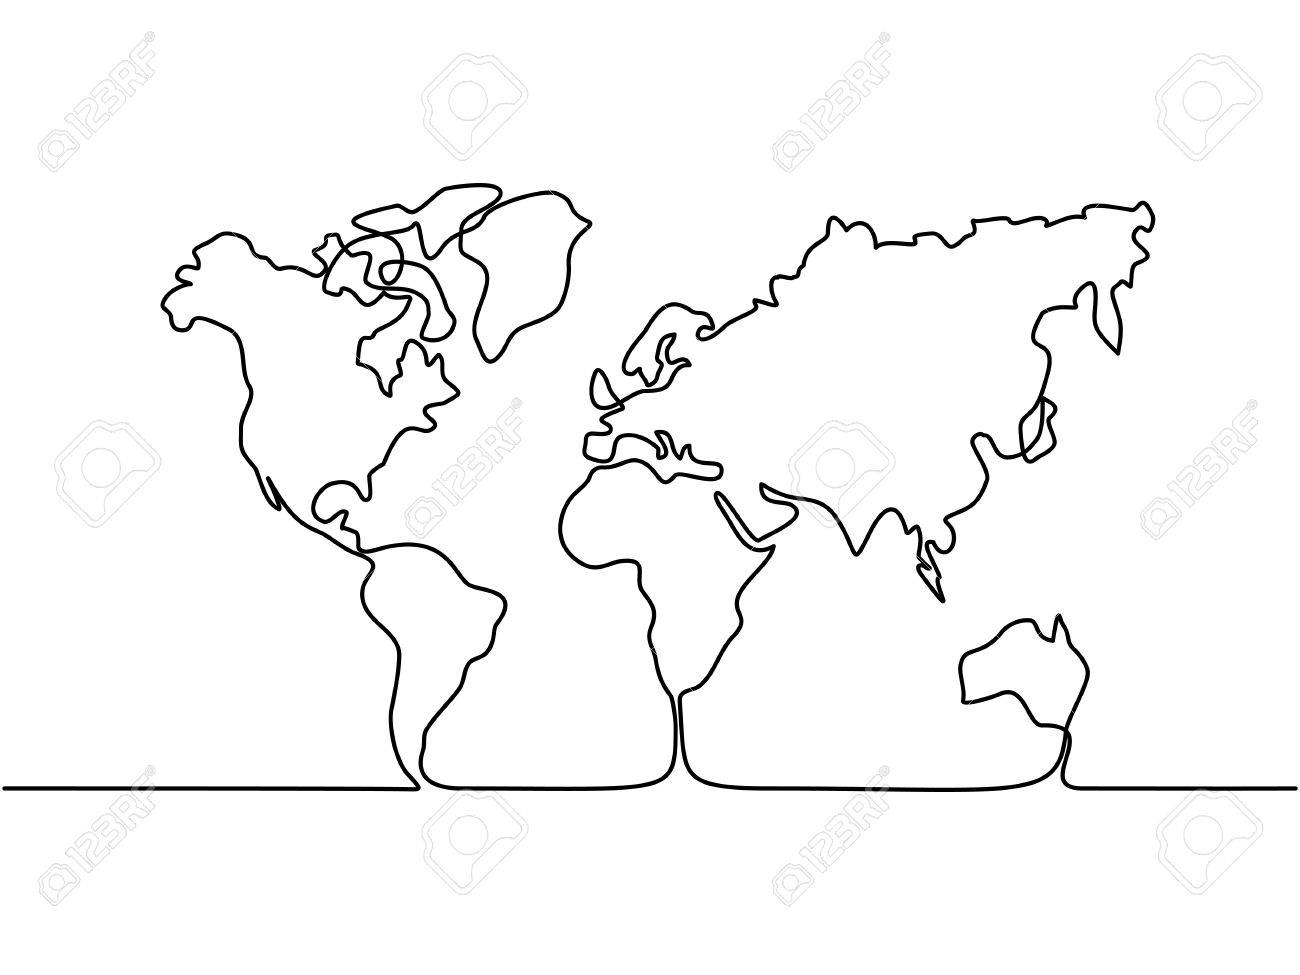 1300x975 Continuous Line Drawing. Map Of The Earth. Vector Illustration